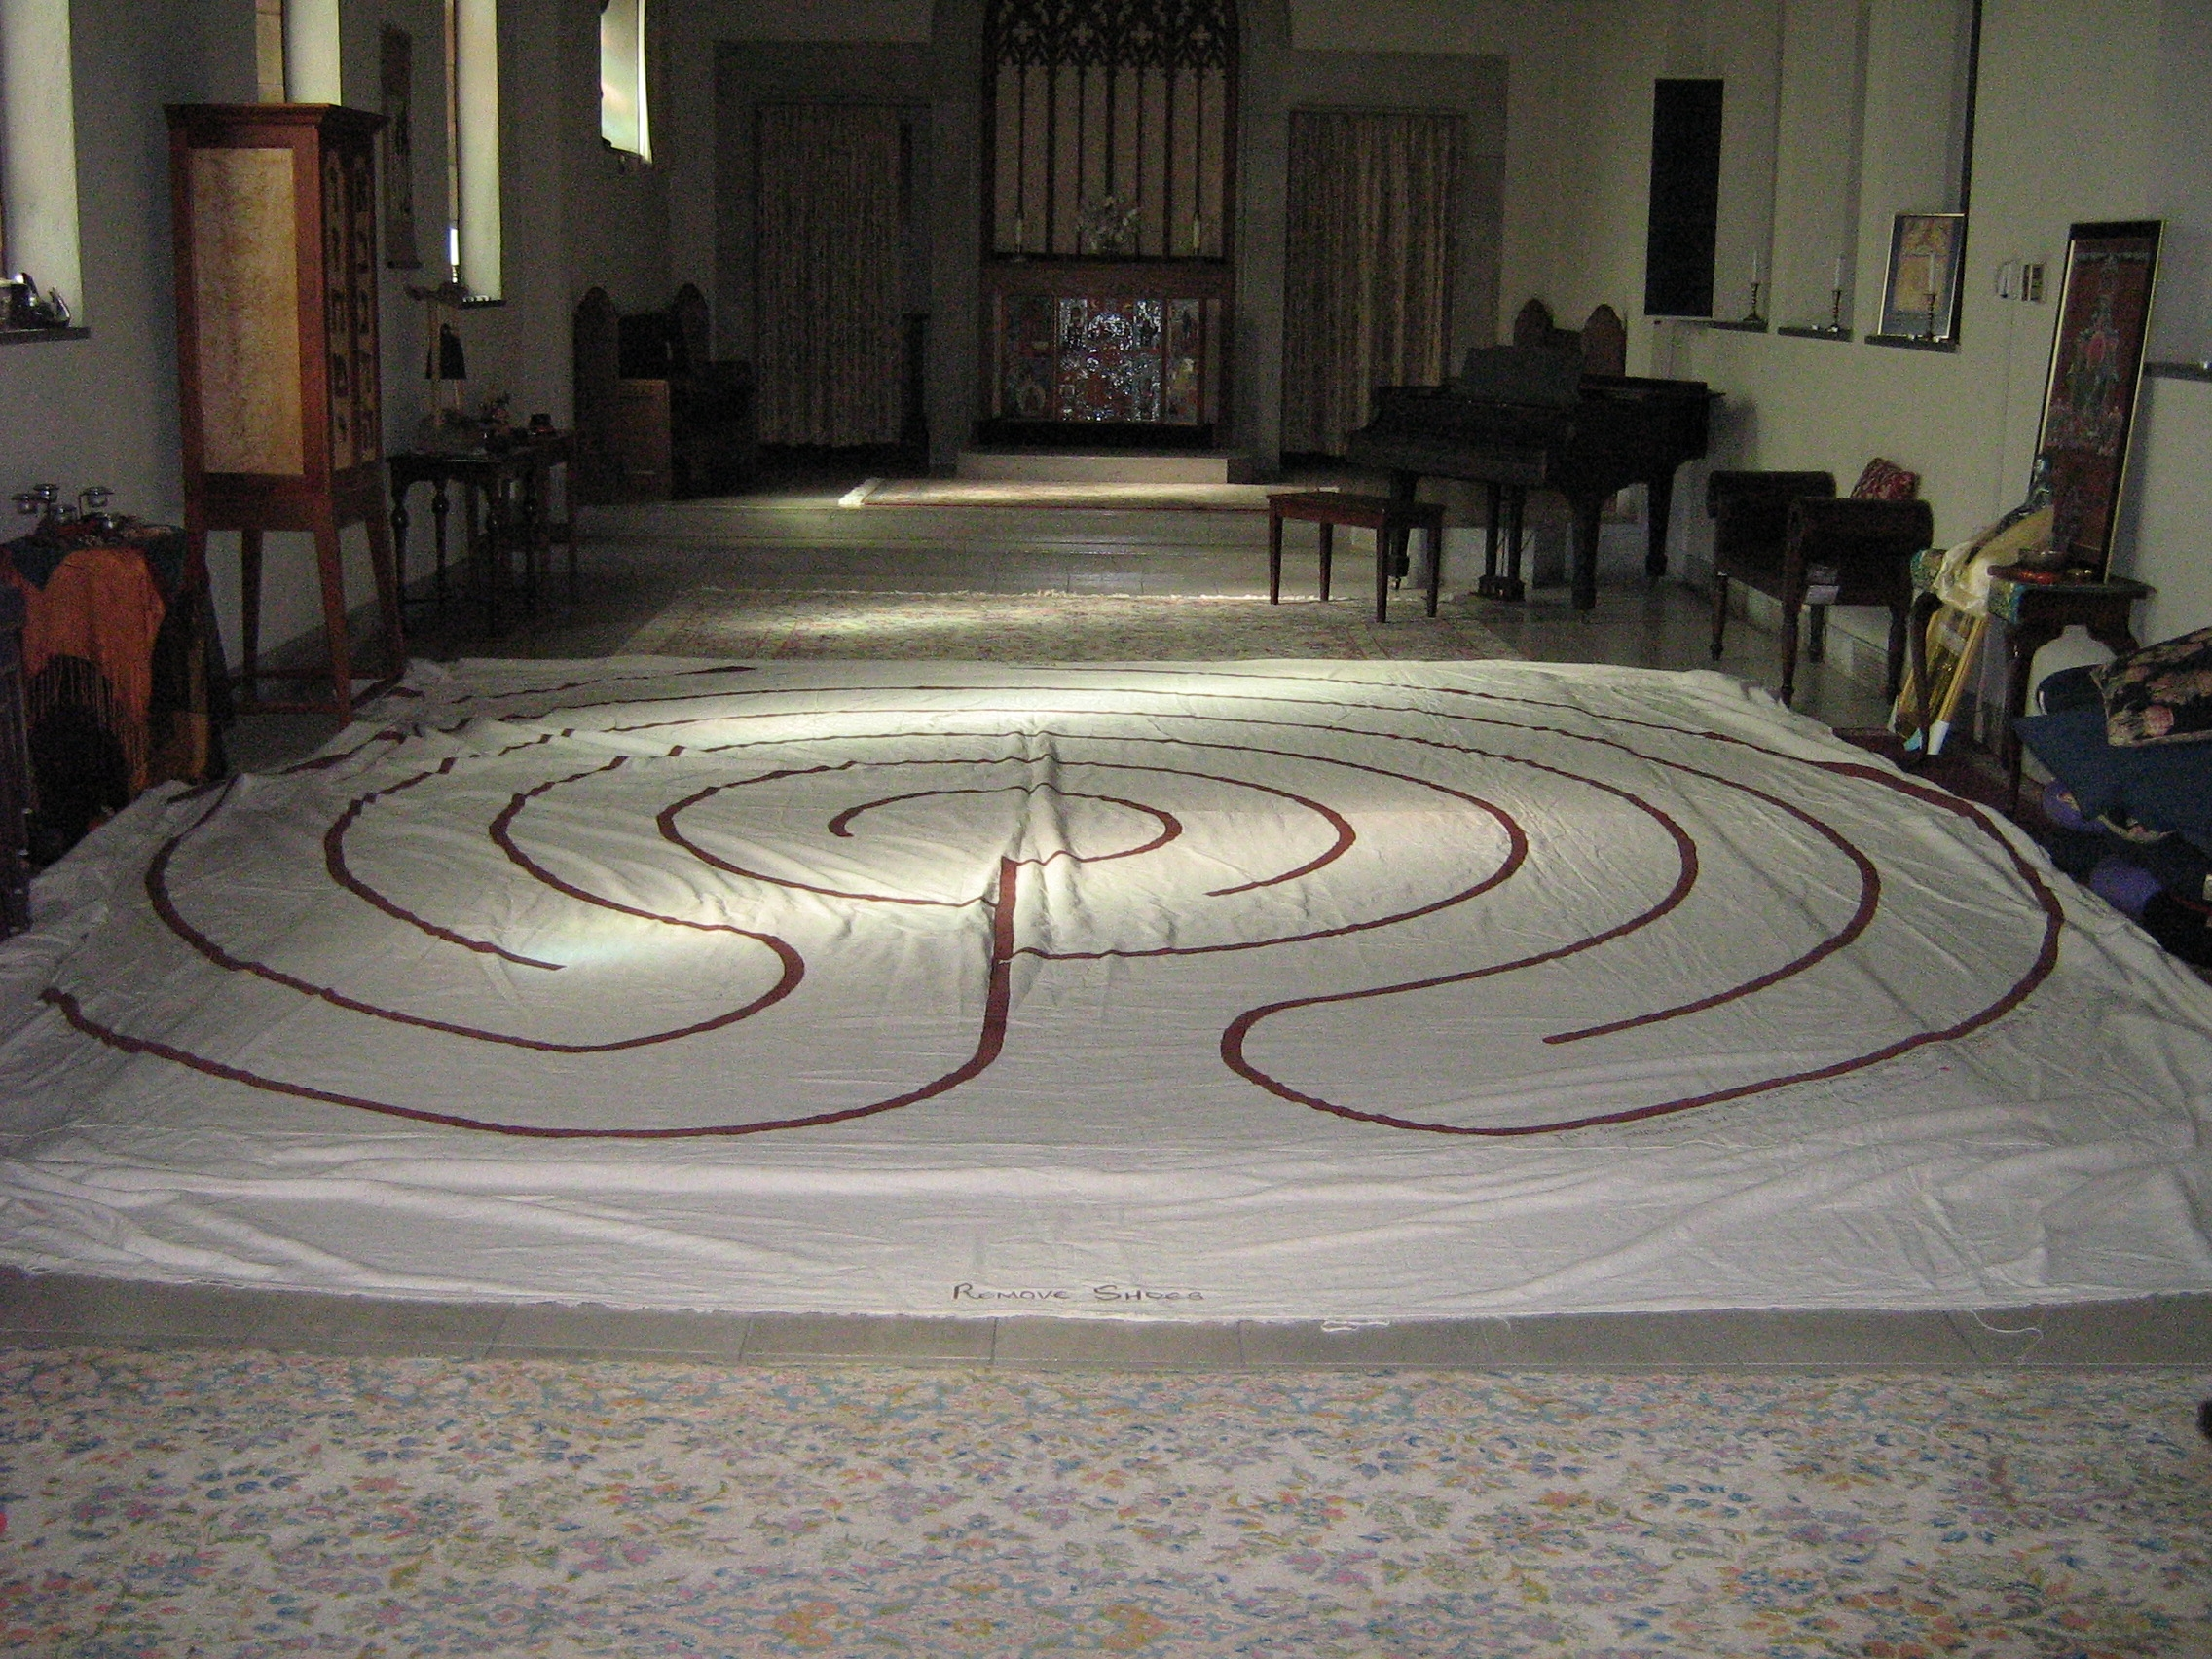 The Labyrinth spread out for use in the Abbey Interfaith Sanctuary